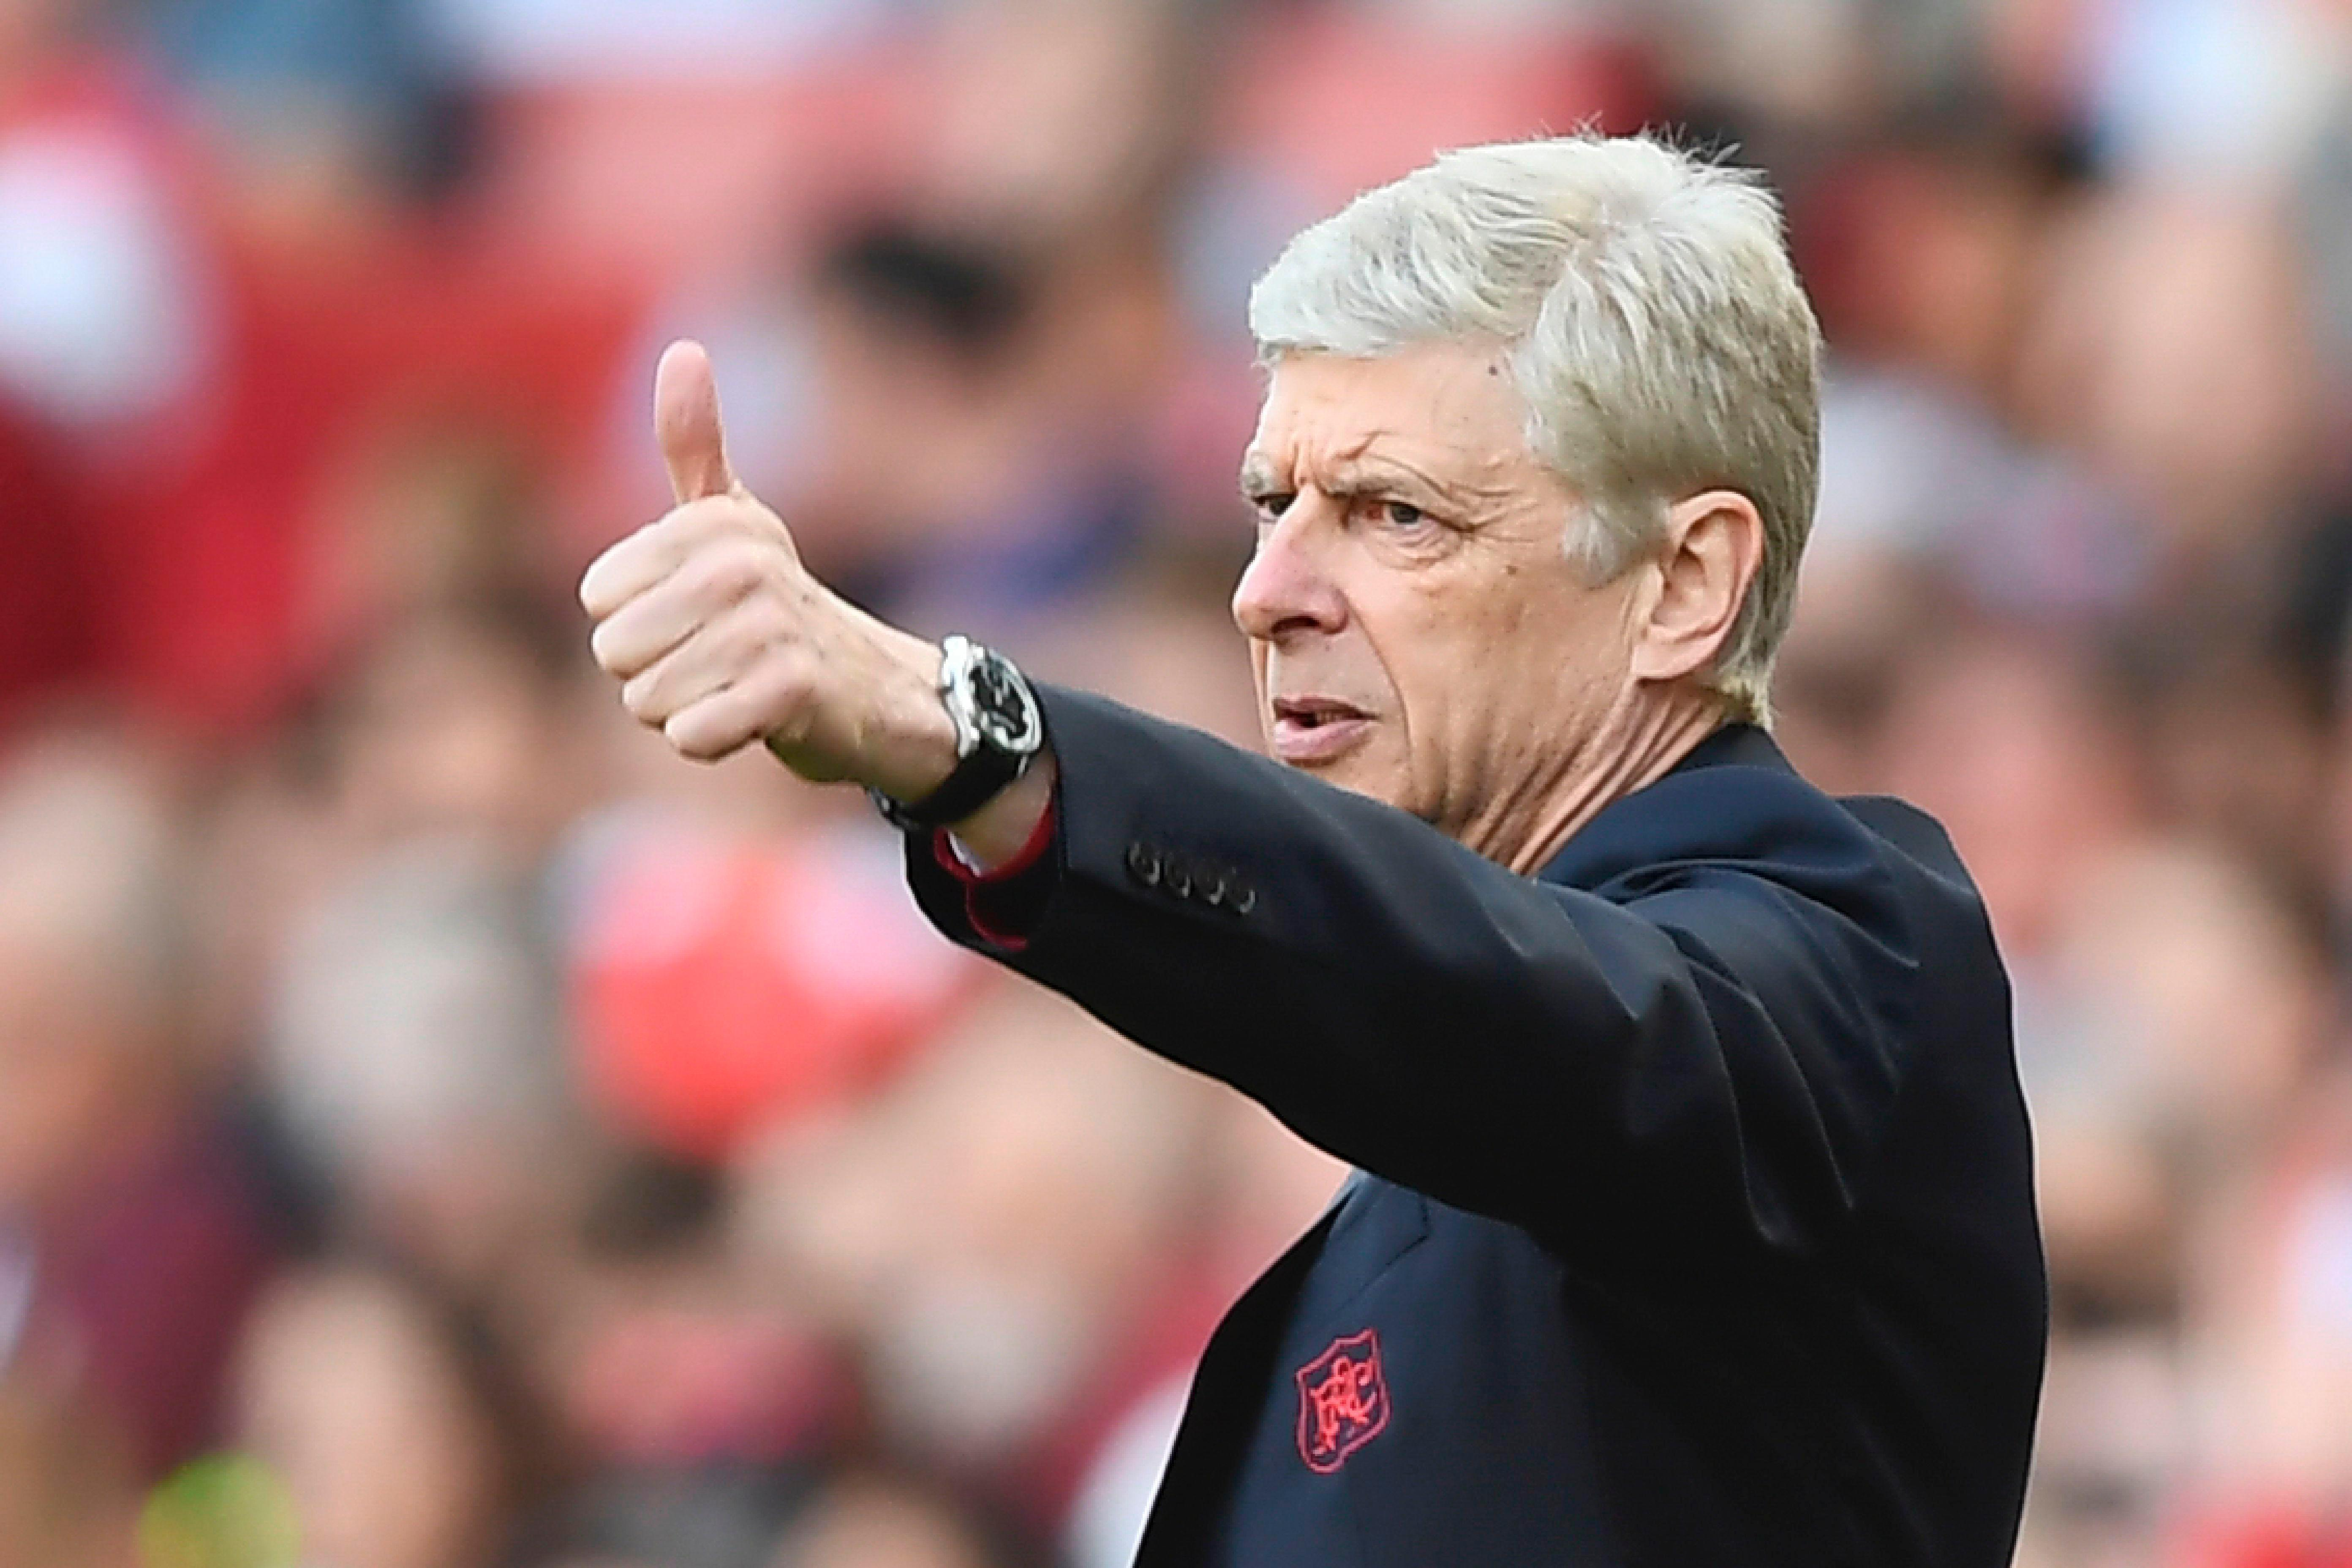 Will Arsene Wenger be giving the thumbs up to Arsenal fans by staying on?